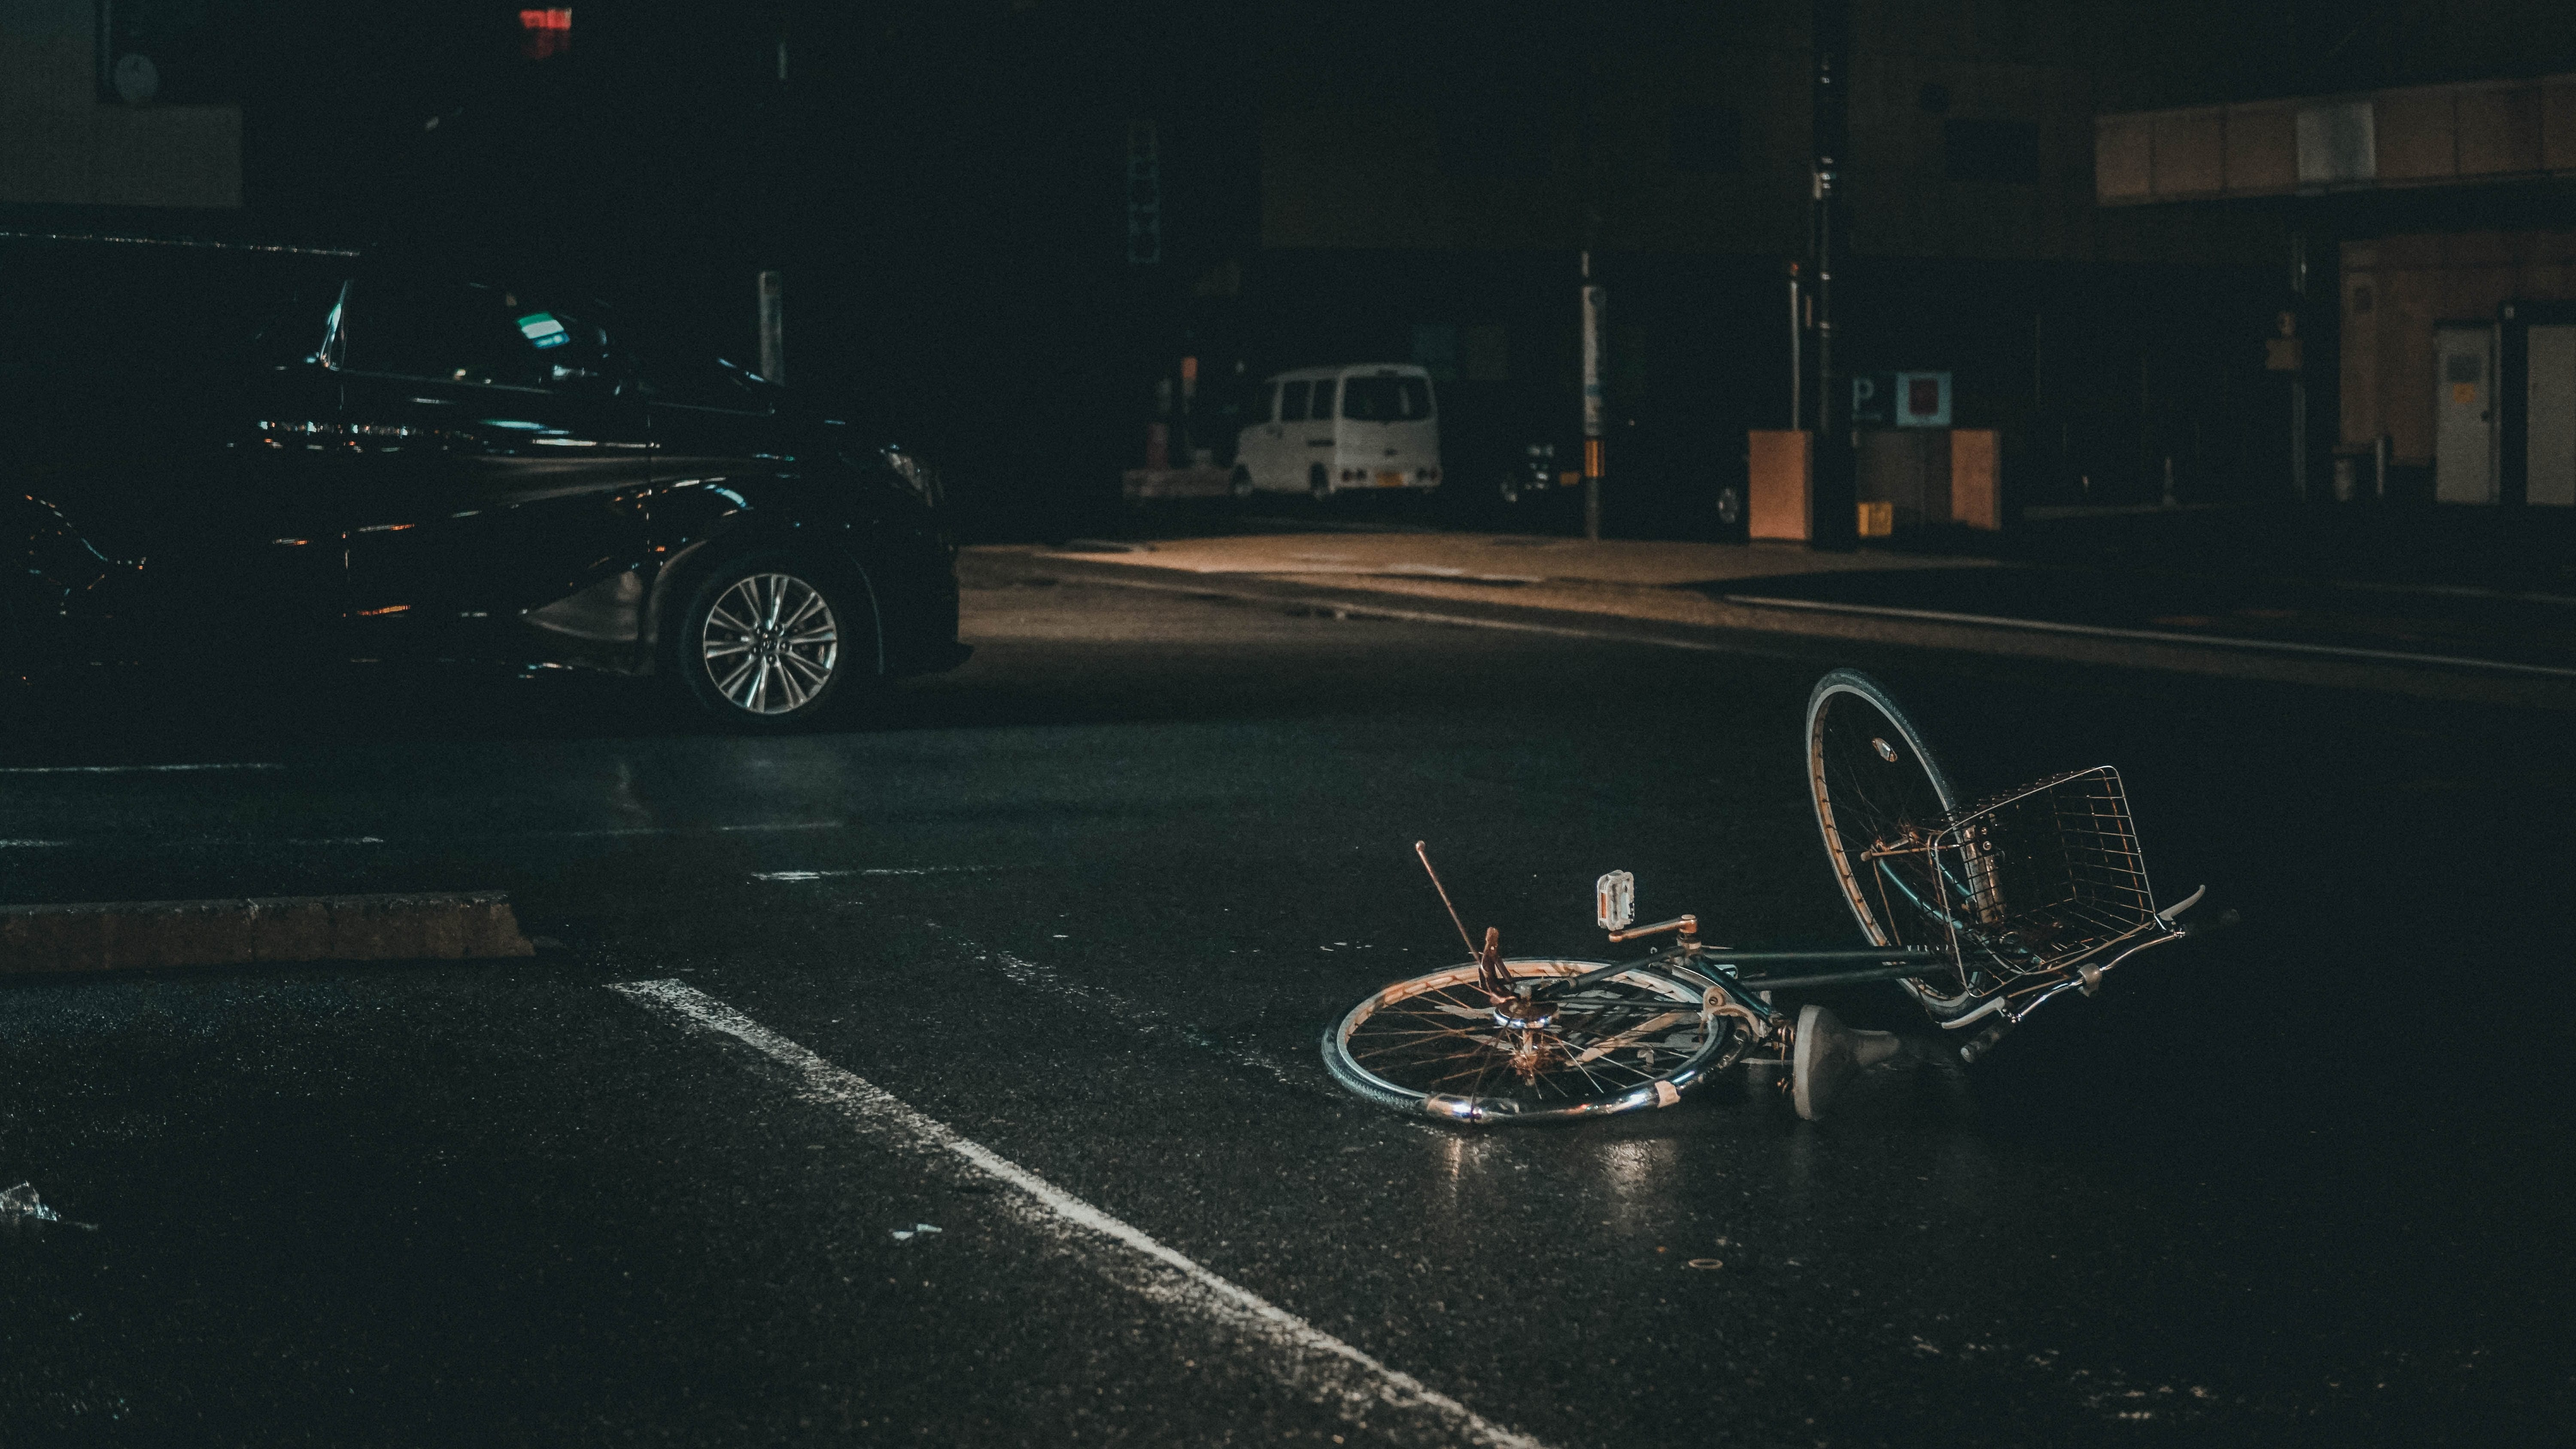 Bicycle on its side in the middle of a dark street with a car nearby; image by Ian Valerio, via Unsplash.com.